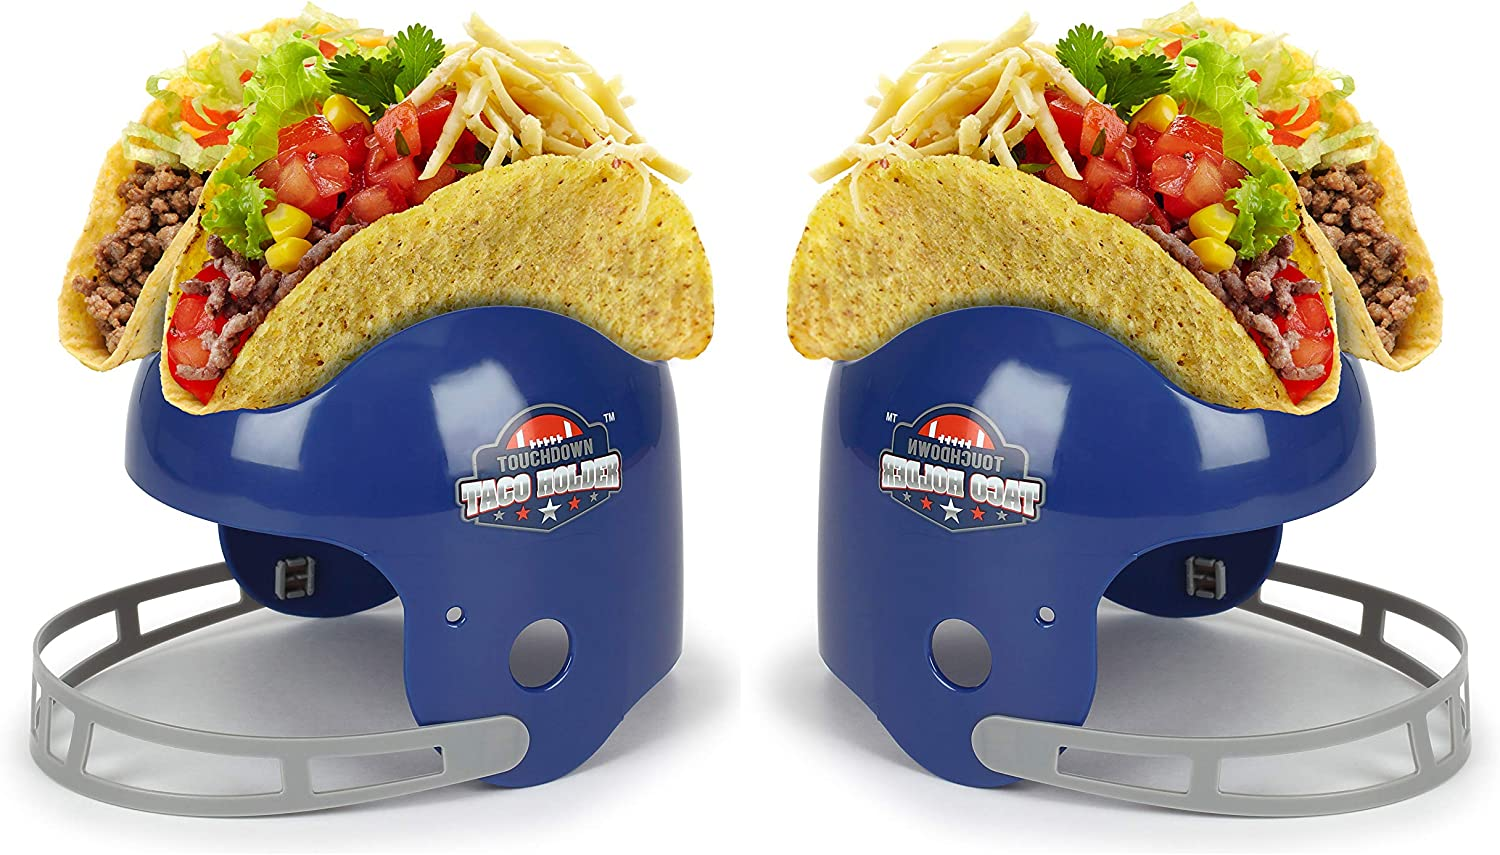 Funwares Touchdown Taco Holder - Football Helmet Taco Stand and Snack Bowl - Set of 2